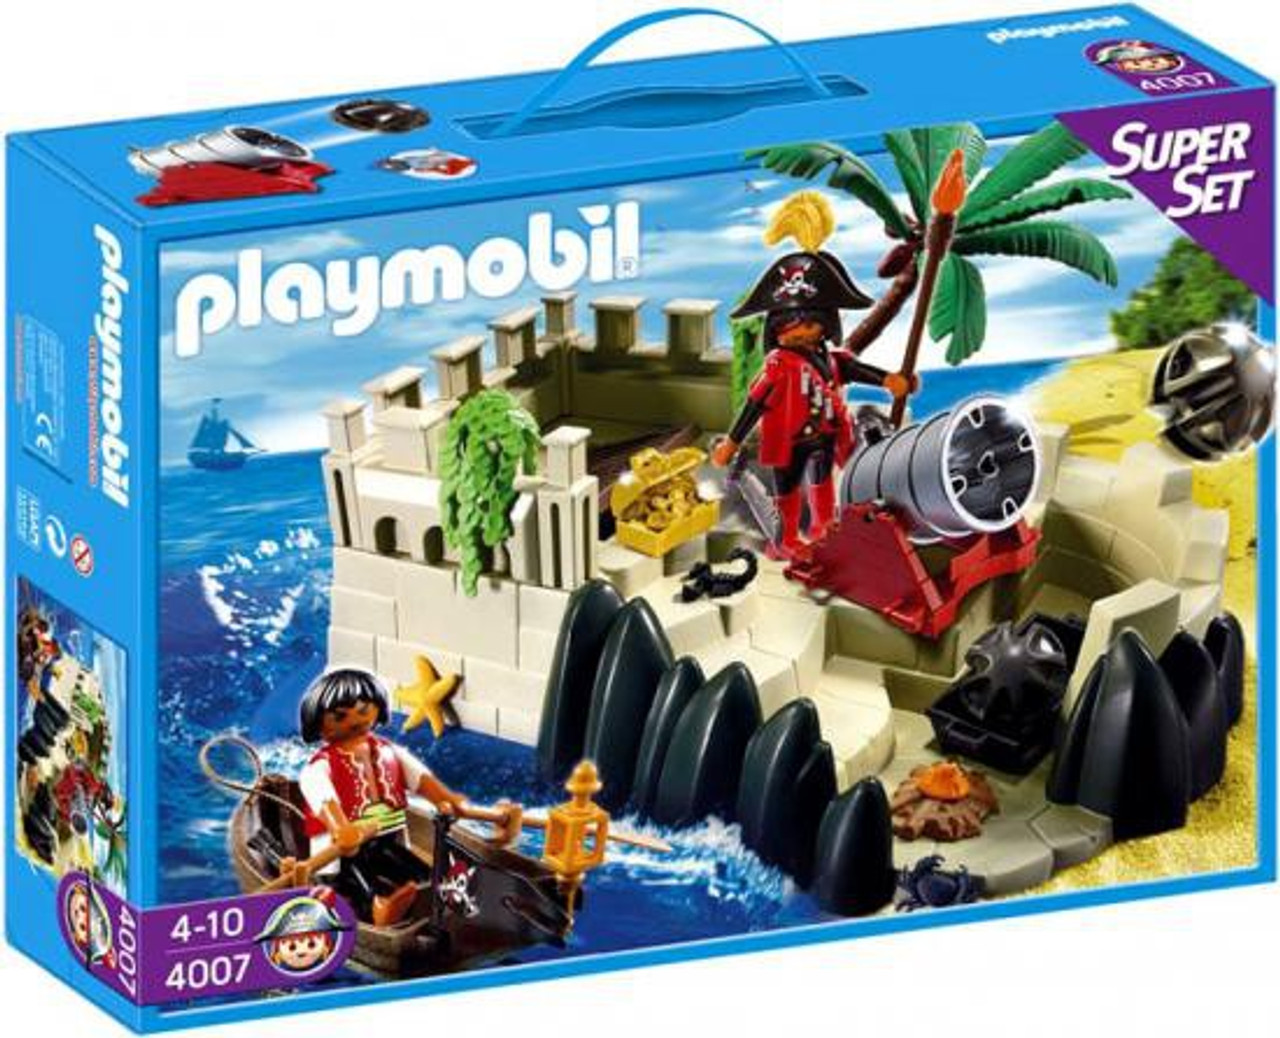 Playmobil Super Set Pirates Cove Set #4007